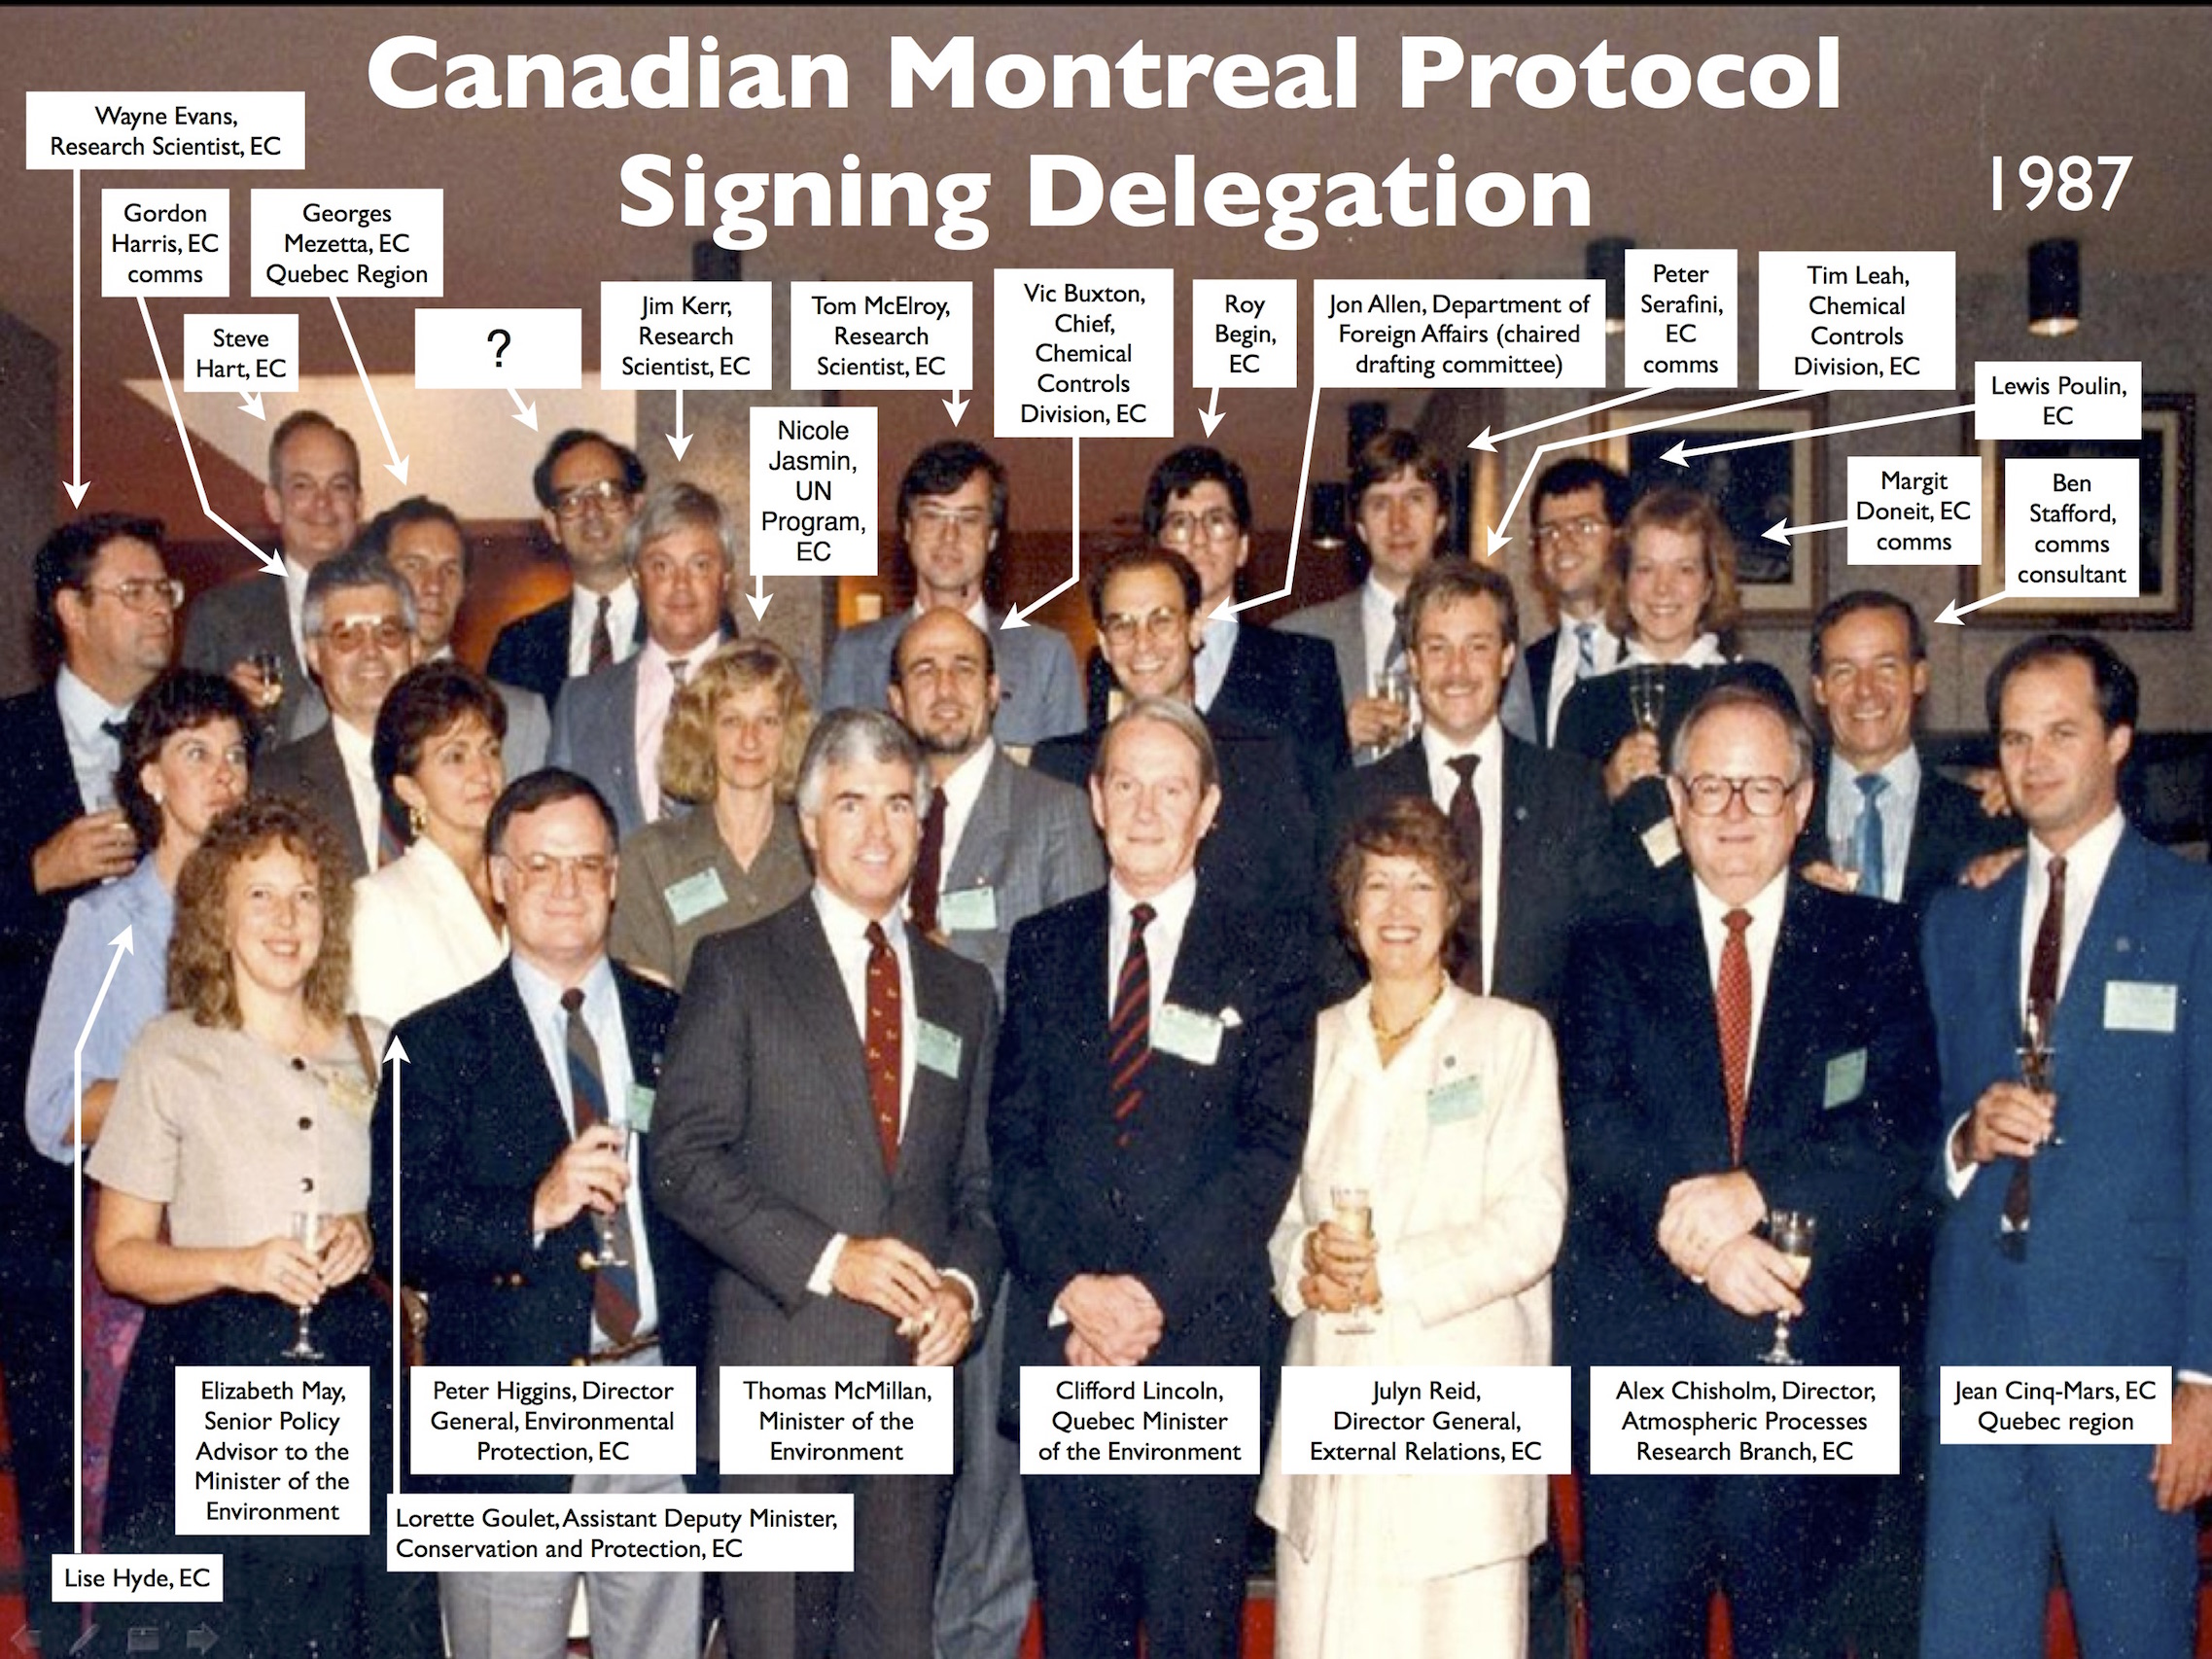 pros and cons of montreal protocol Every time you visit a web page, your browser fetches it by requesting all the assets of the page from a web server since the birth of the web, this has mostly been done via http/11.